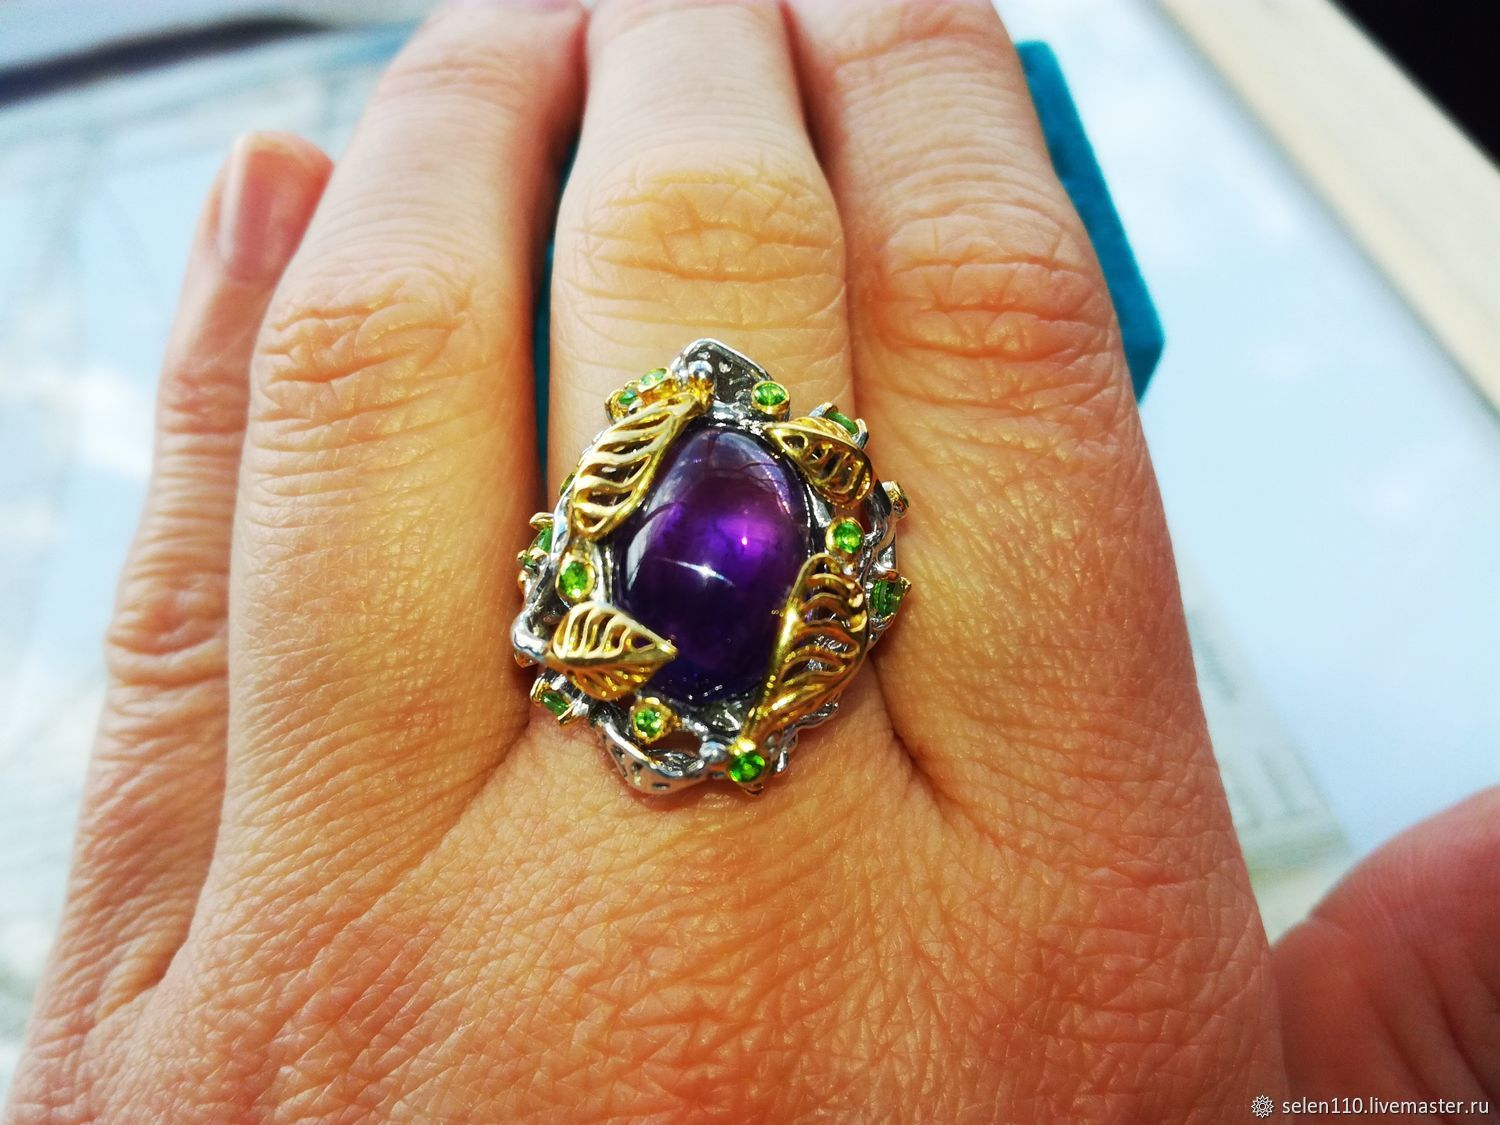 Ring 'Sweet dream' with amethyst, Rings, Voronezh,  Фото №1